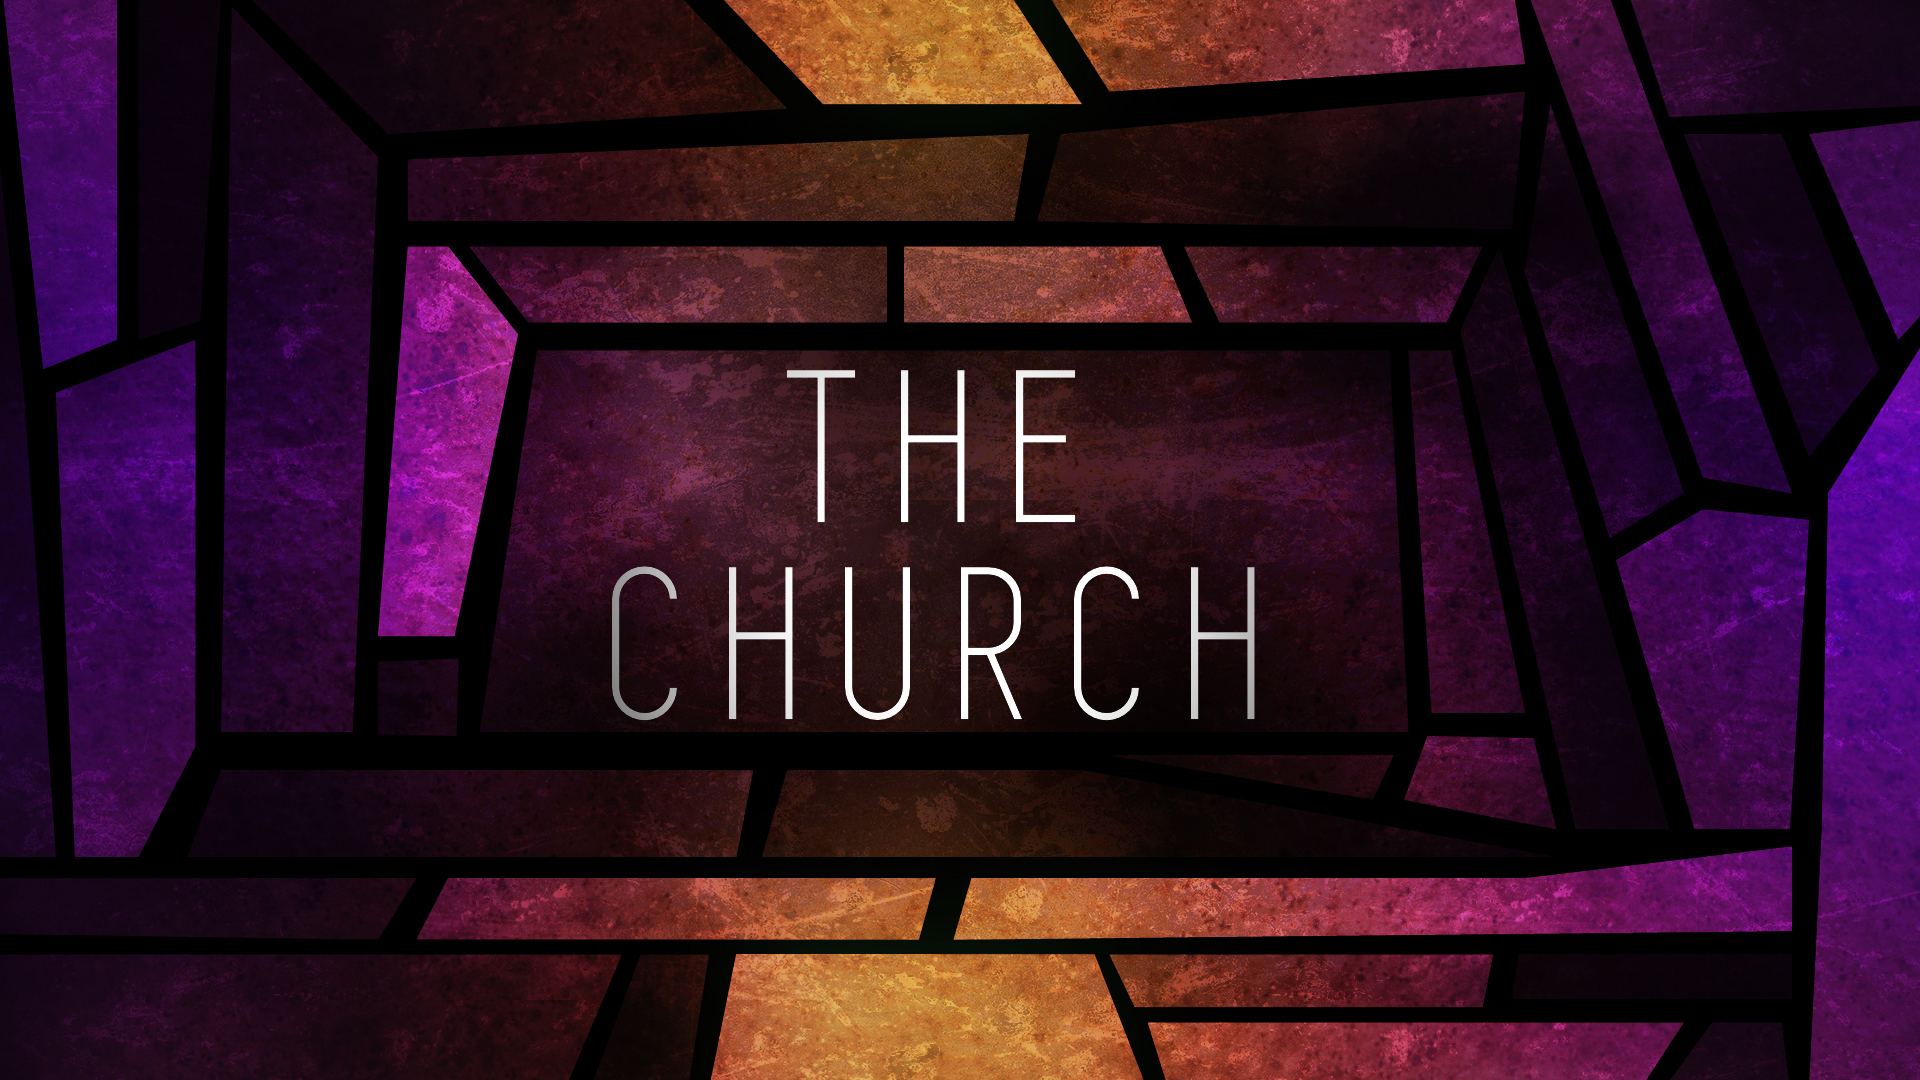 THE CHURCH Title Slide.jpg